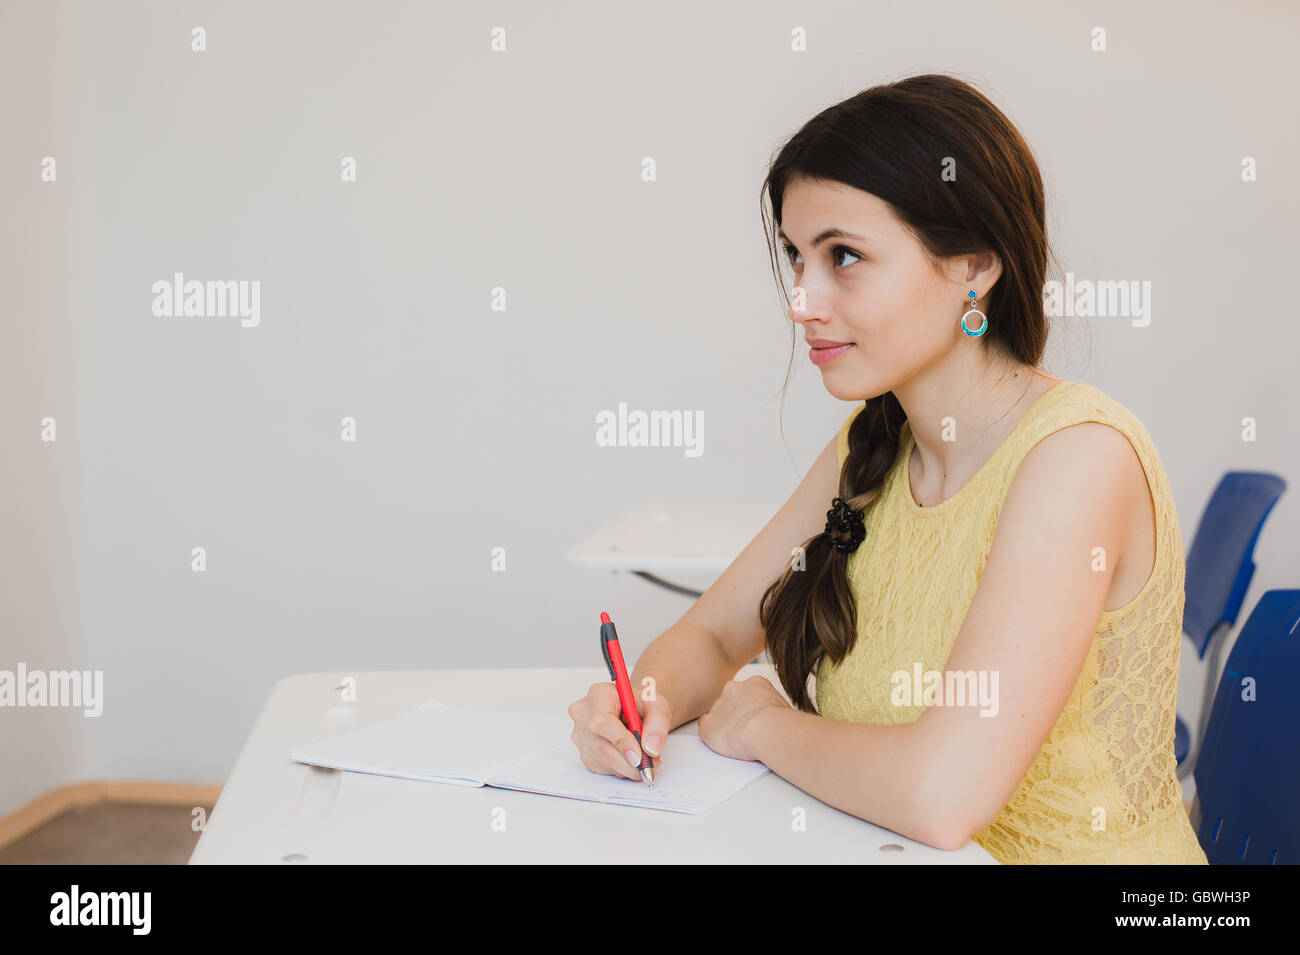 Female Teenage Student Studying In Classroom - Stock Image